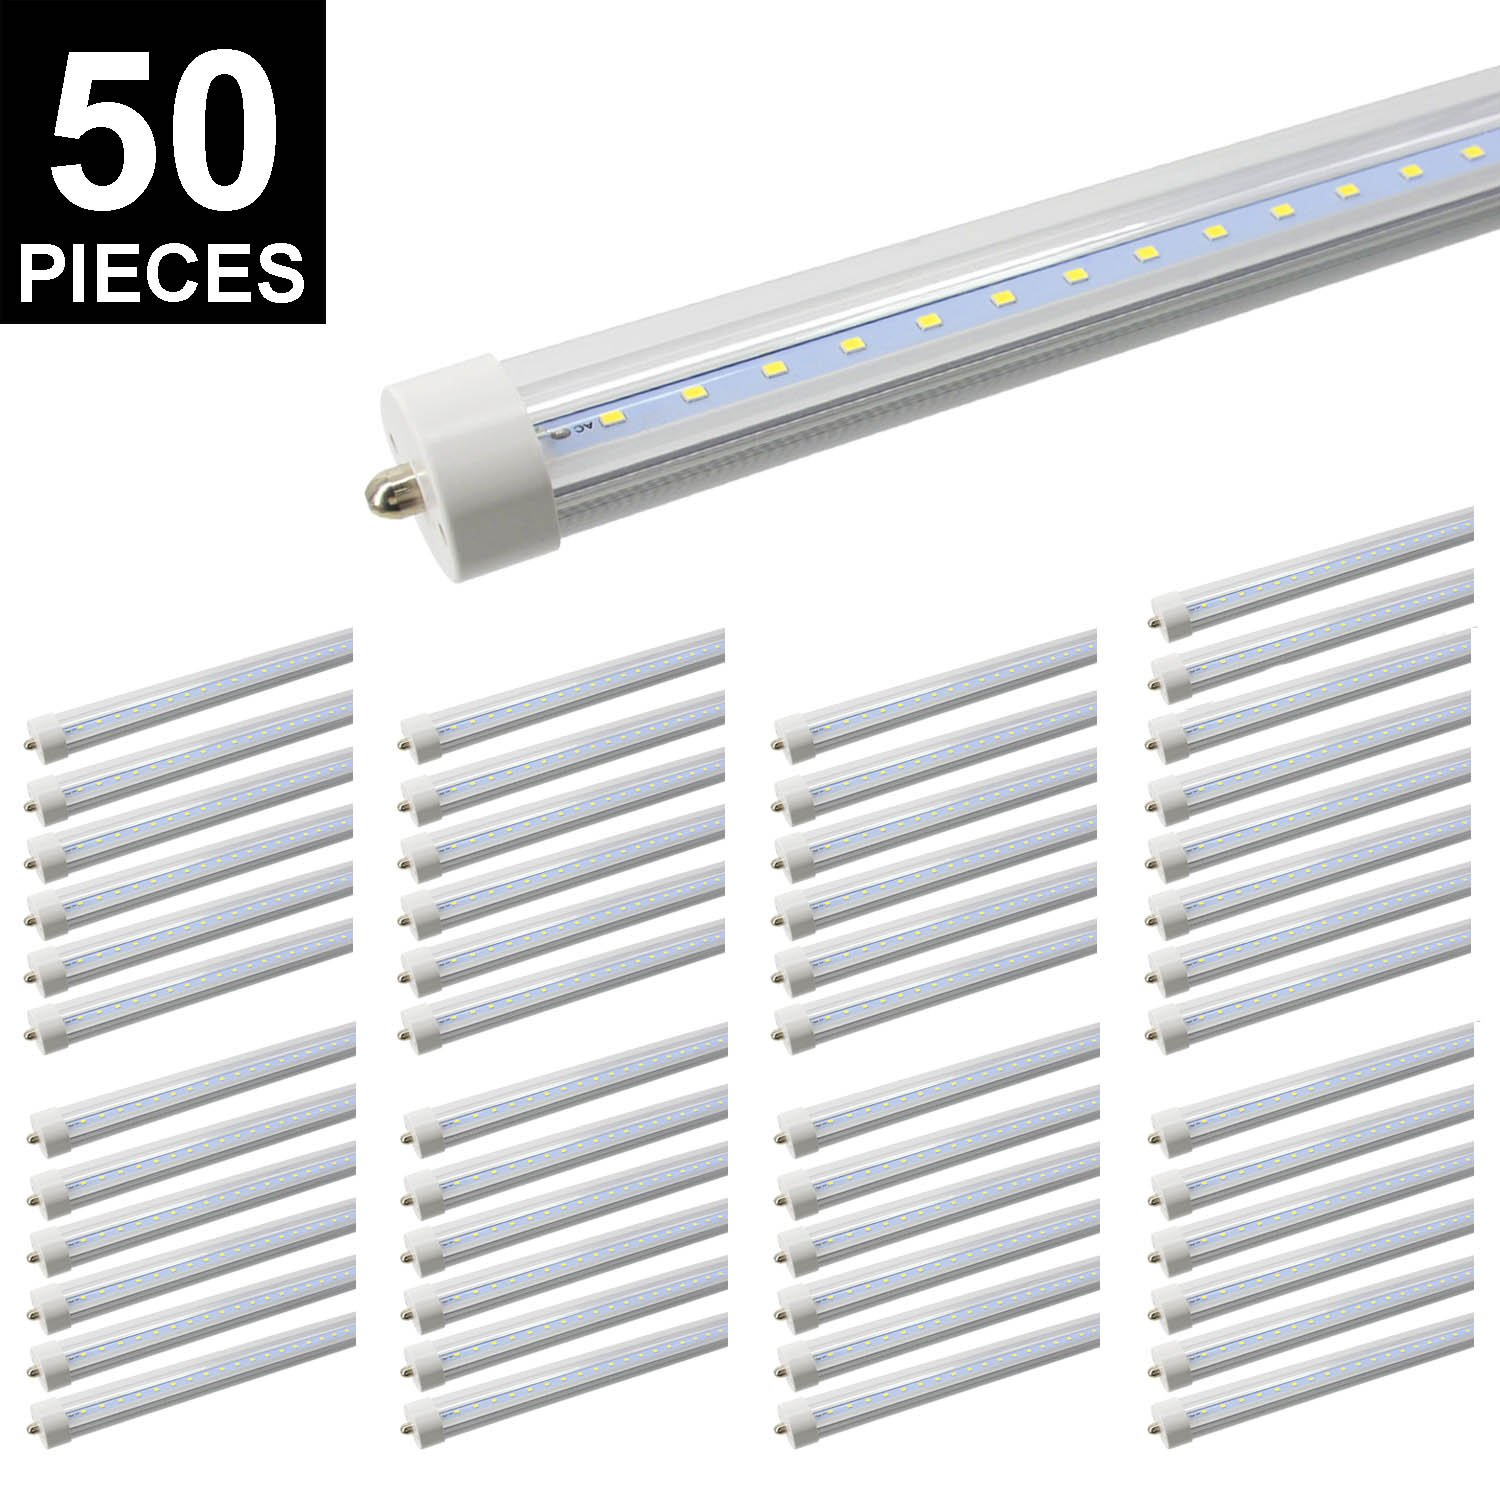 CNSUNWAY LIGHTING 8ft LED Tube, 96'' 45Watt T8 FA8 Single Pin LED Bulbs With Clean Cover, 4800LM Super Bright 6000K Cool White (50)